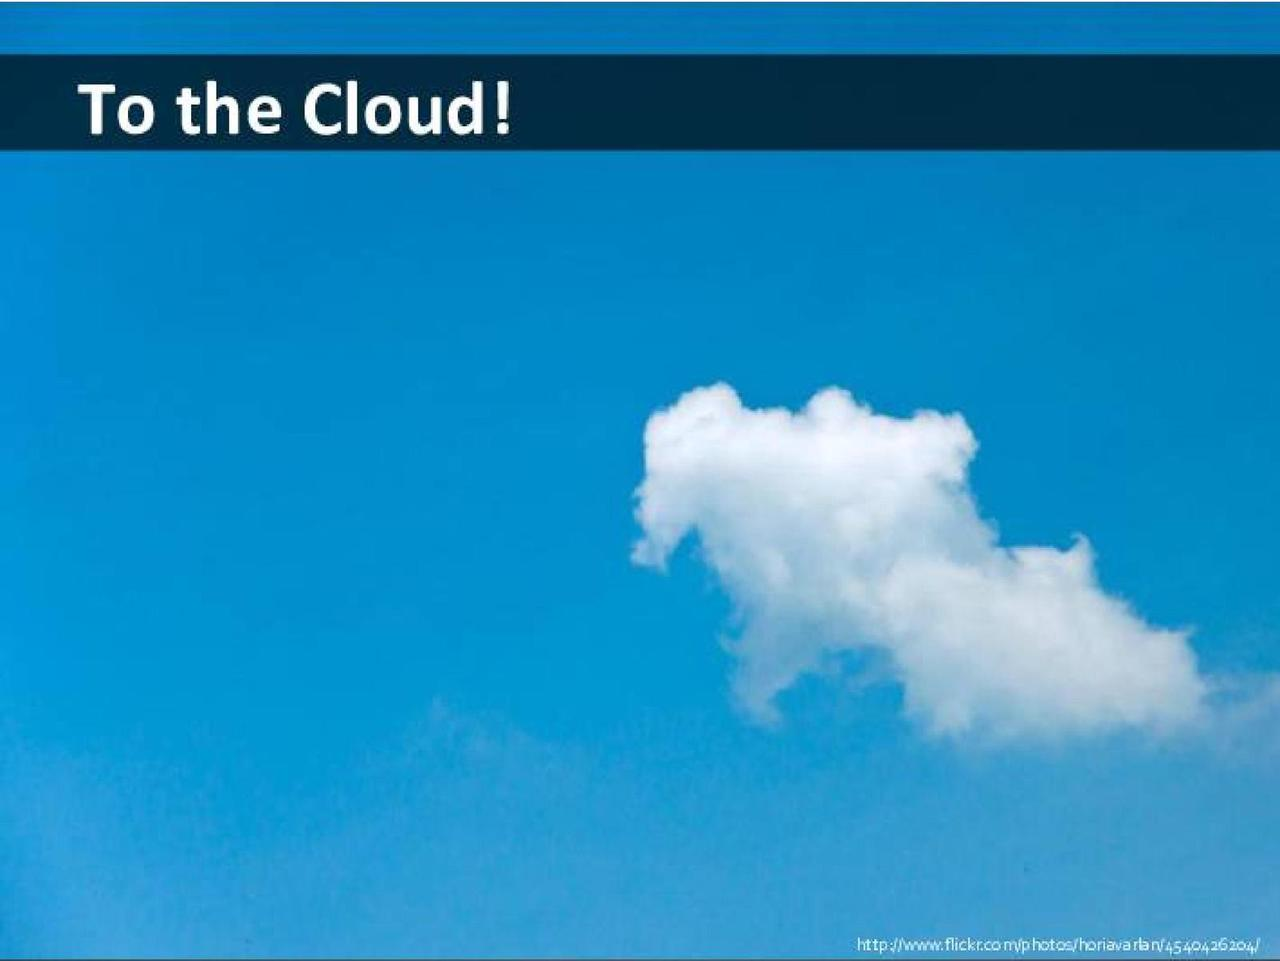 To the Cloud!